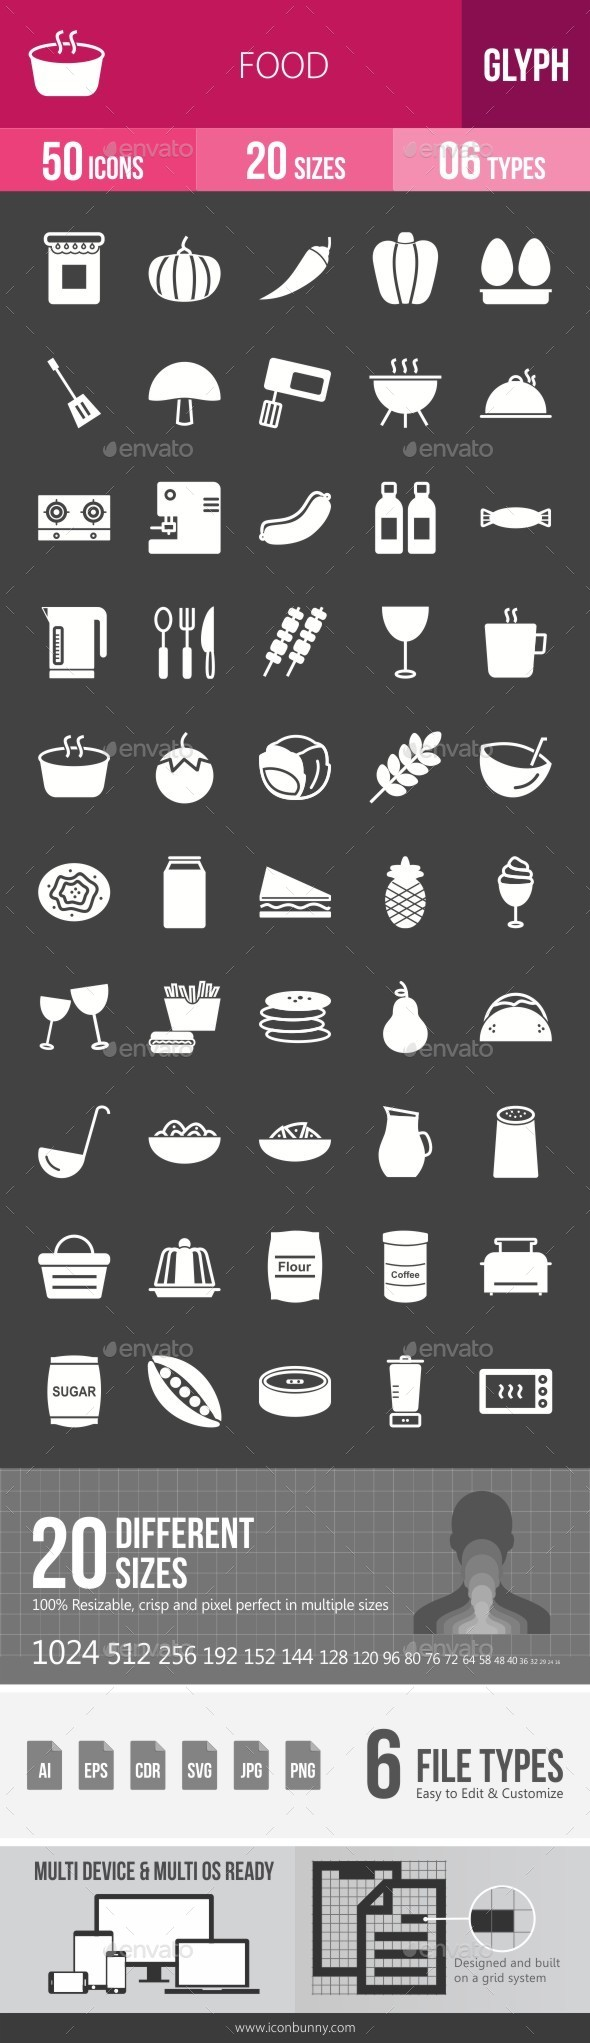 Food Glyph Inverted Icons - Icons